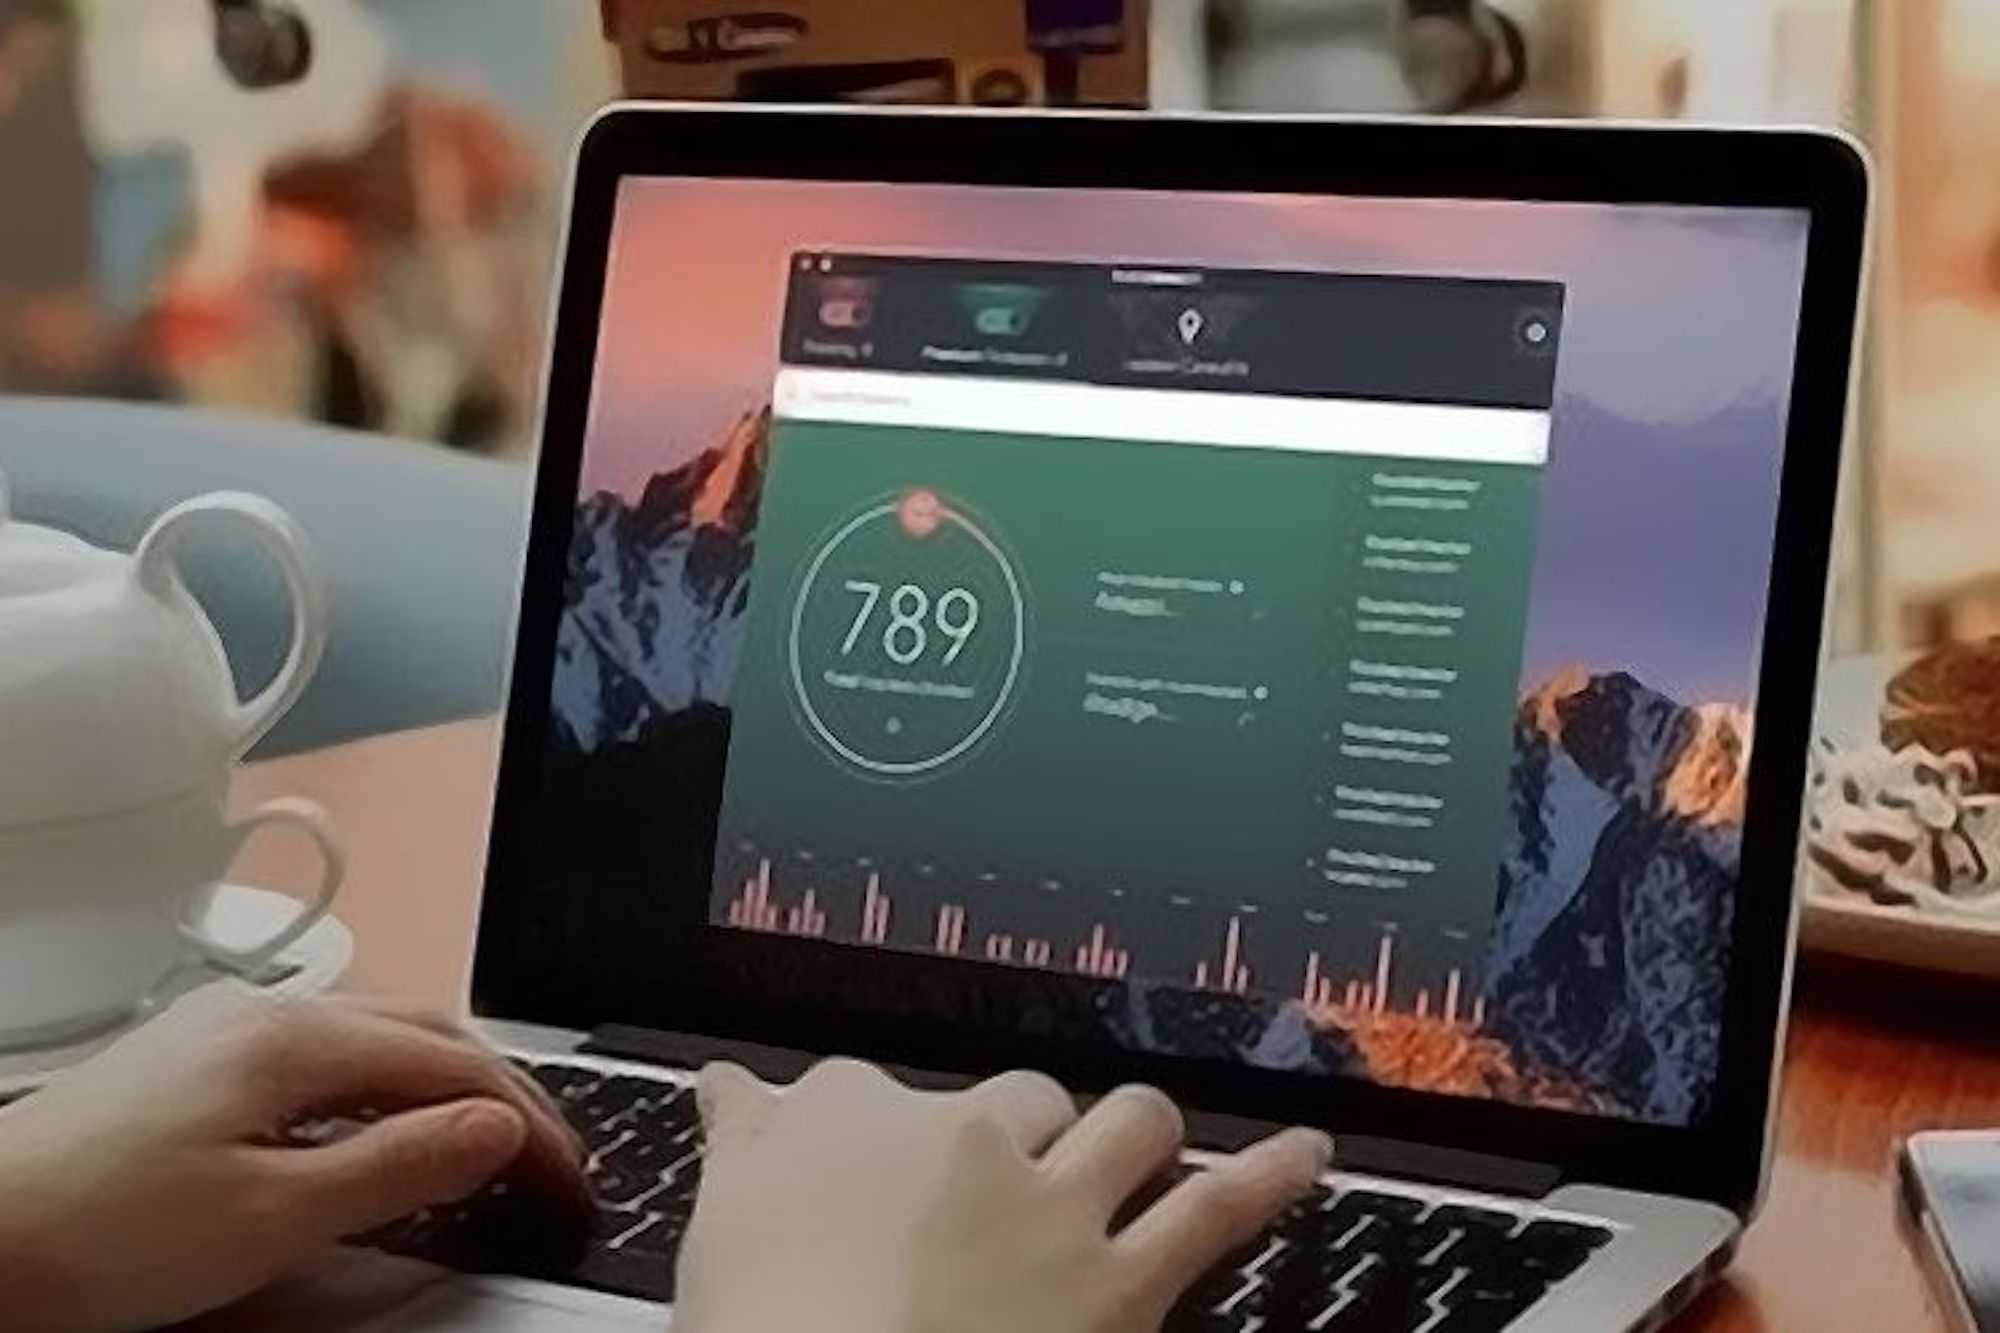 Make Working Online Safer and Faster with Disconnect VPN